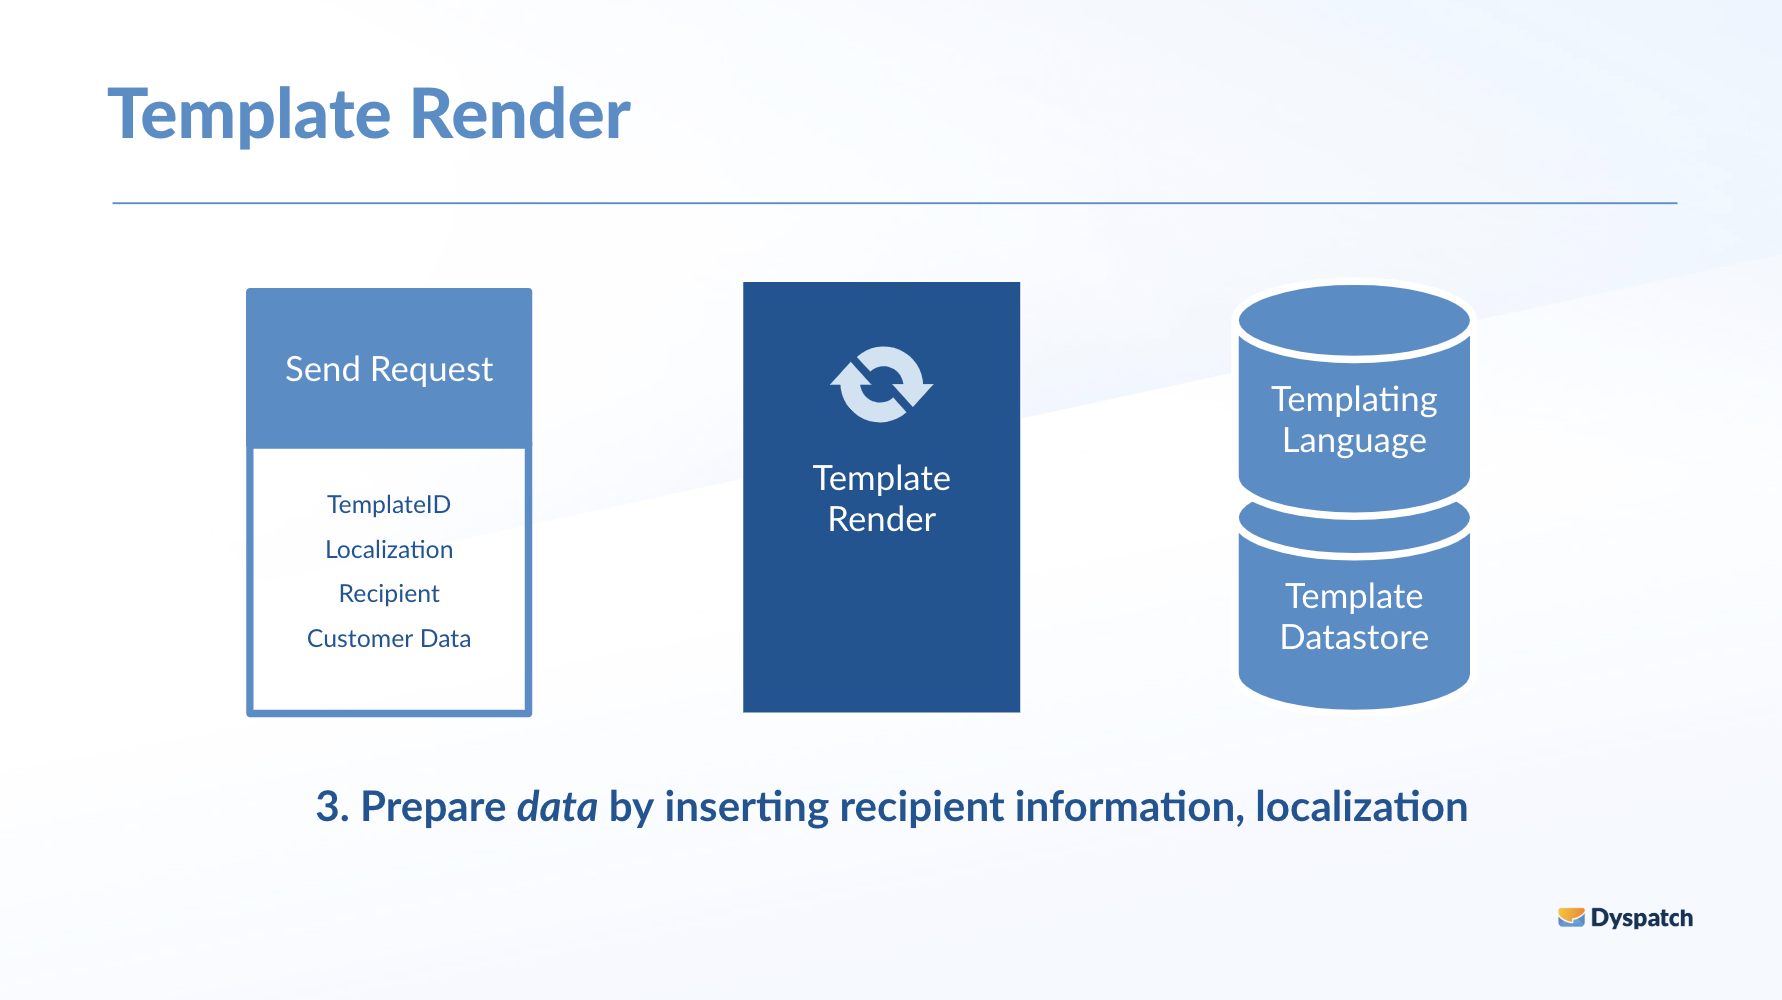 Insert recipient information and localization